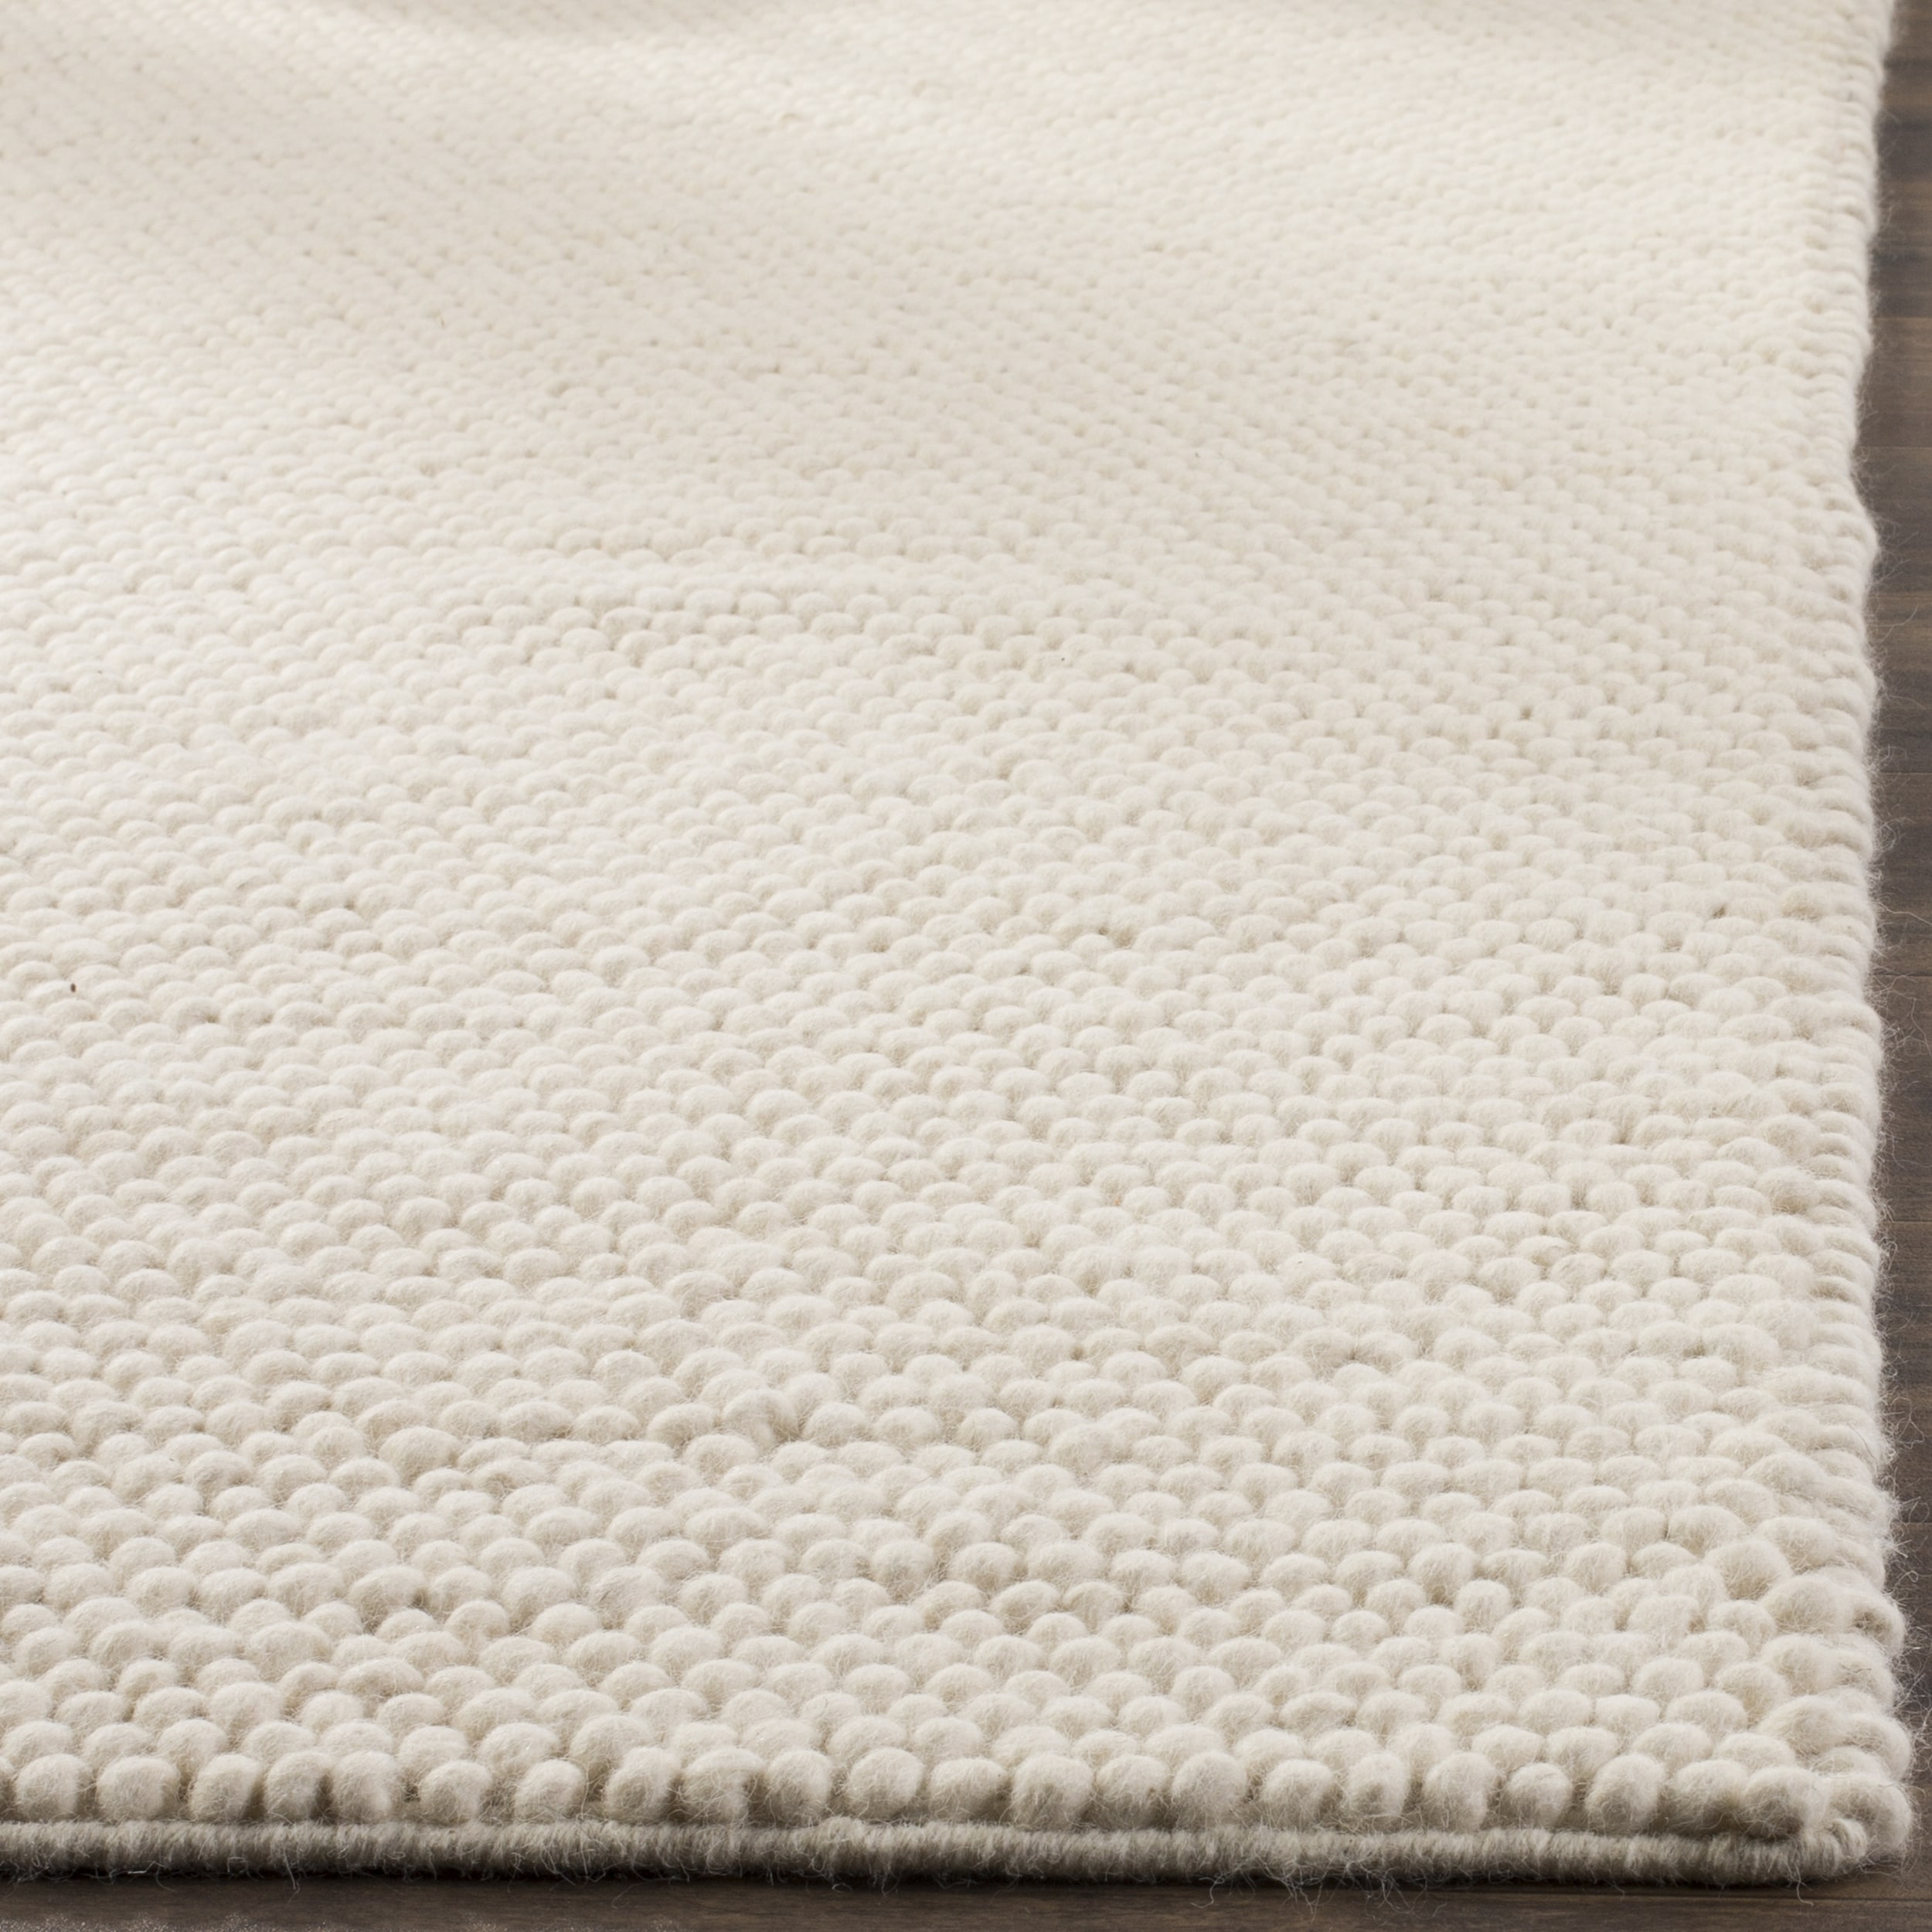 Safavieh Natura Hand Tufted Ivory Wool Area Rug 9 X 12 On Free Shipping Today Com 15193478